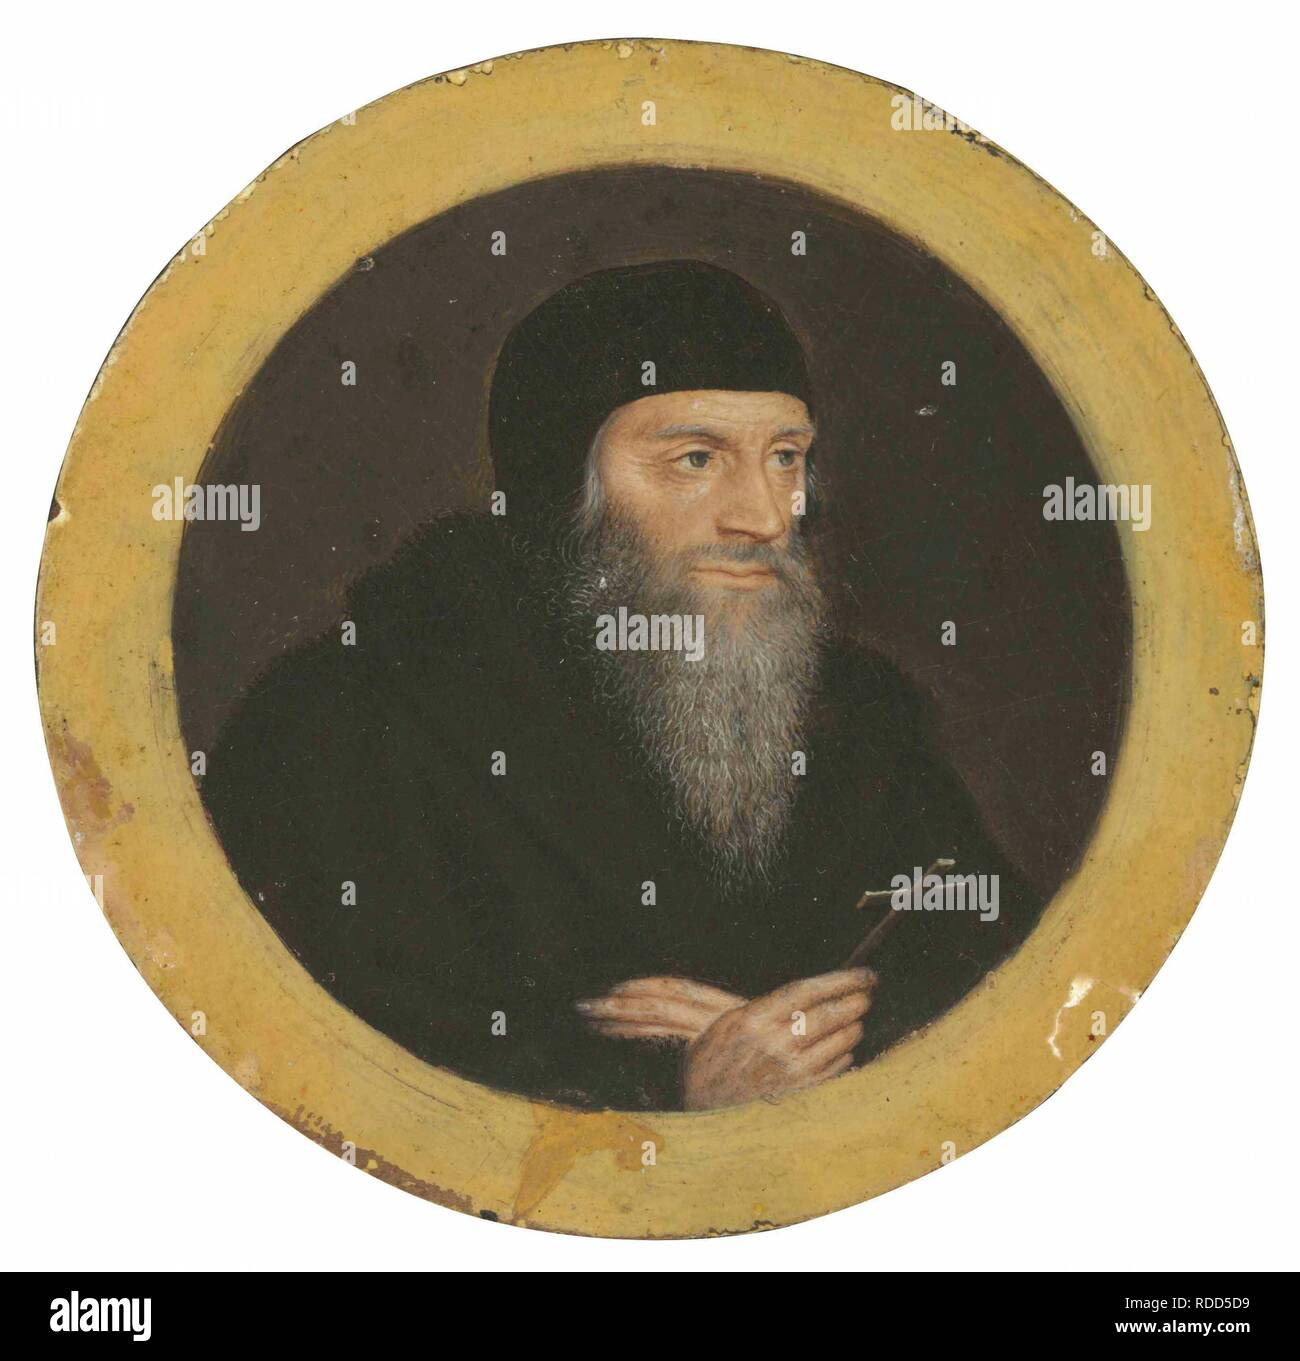 Portrait of Sir Thomas More as he was led to execution. Museum: PRIVATE COLLECTION. Author: Holbein, Hans, the Younger, Workshop of. - Stock Image